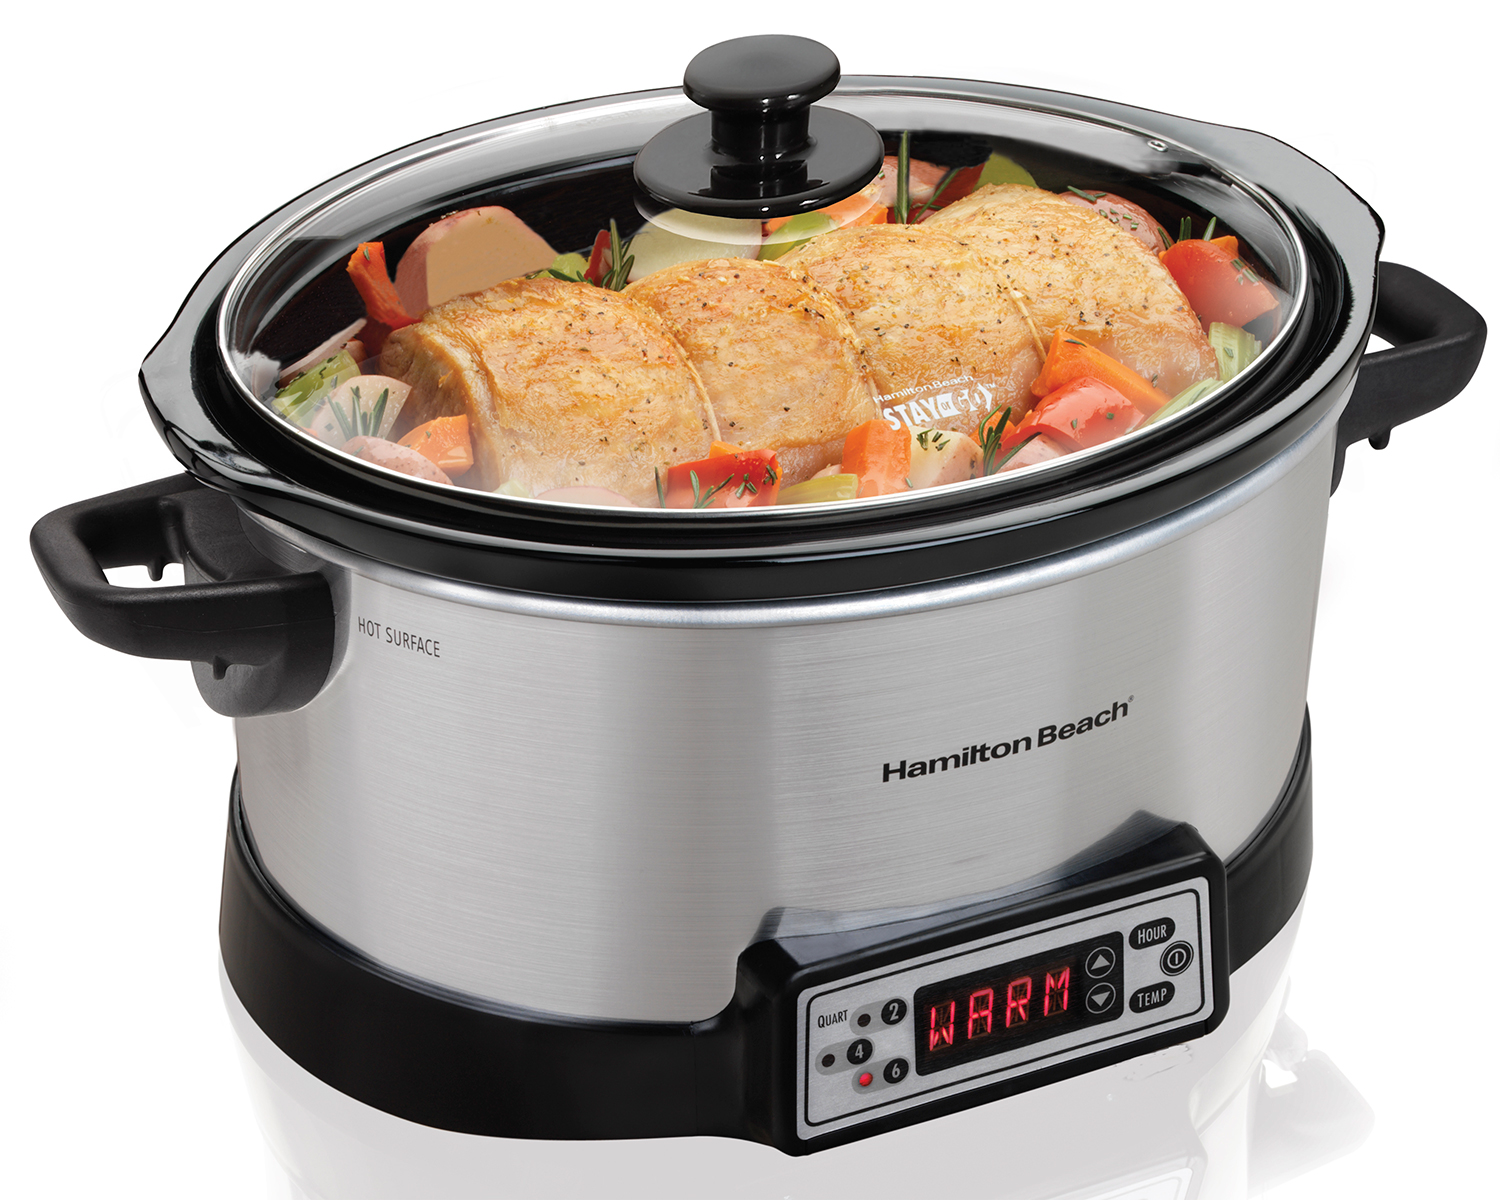 Programmable Right Size™ Multi Quart Slow Cooker (33642C)